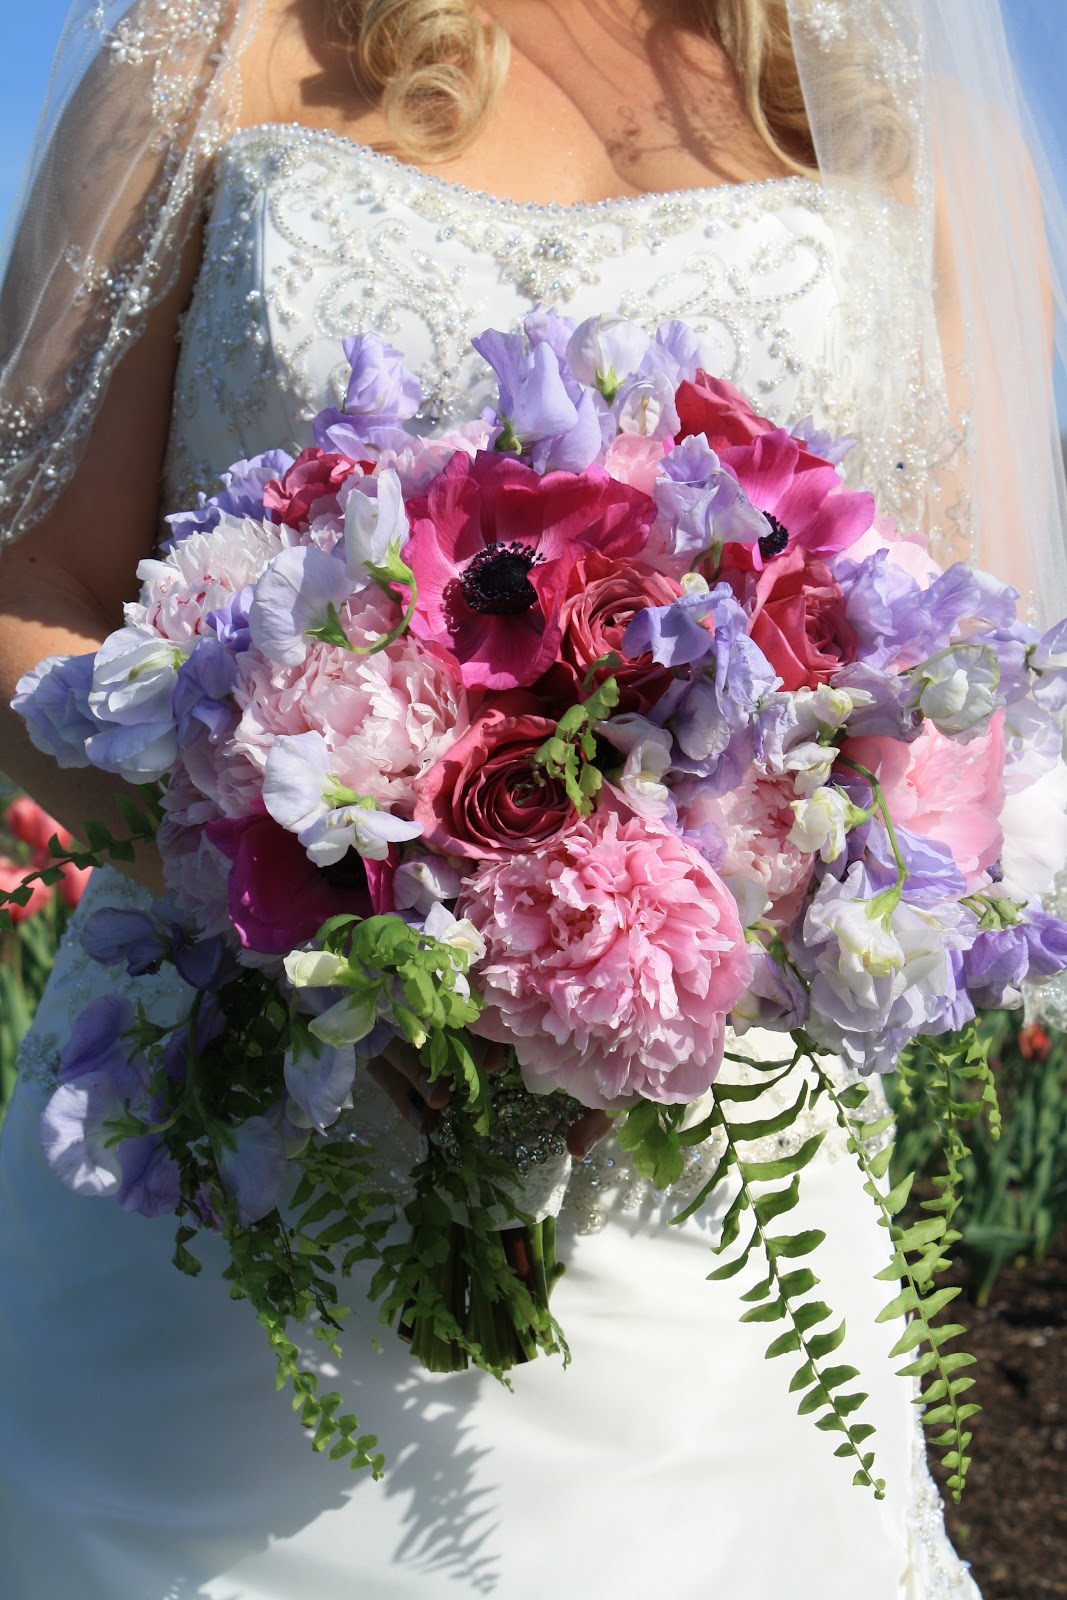 Colorful Bride's Bouquet, Purple Garden Rose Bouquet, Garden Rose Bouquet, David Austin Rose Bouquet, Rose Bridal Bouquet, Rose Bouquet, Wedding Bouquet, Splendid Stems Wedding Flowers